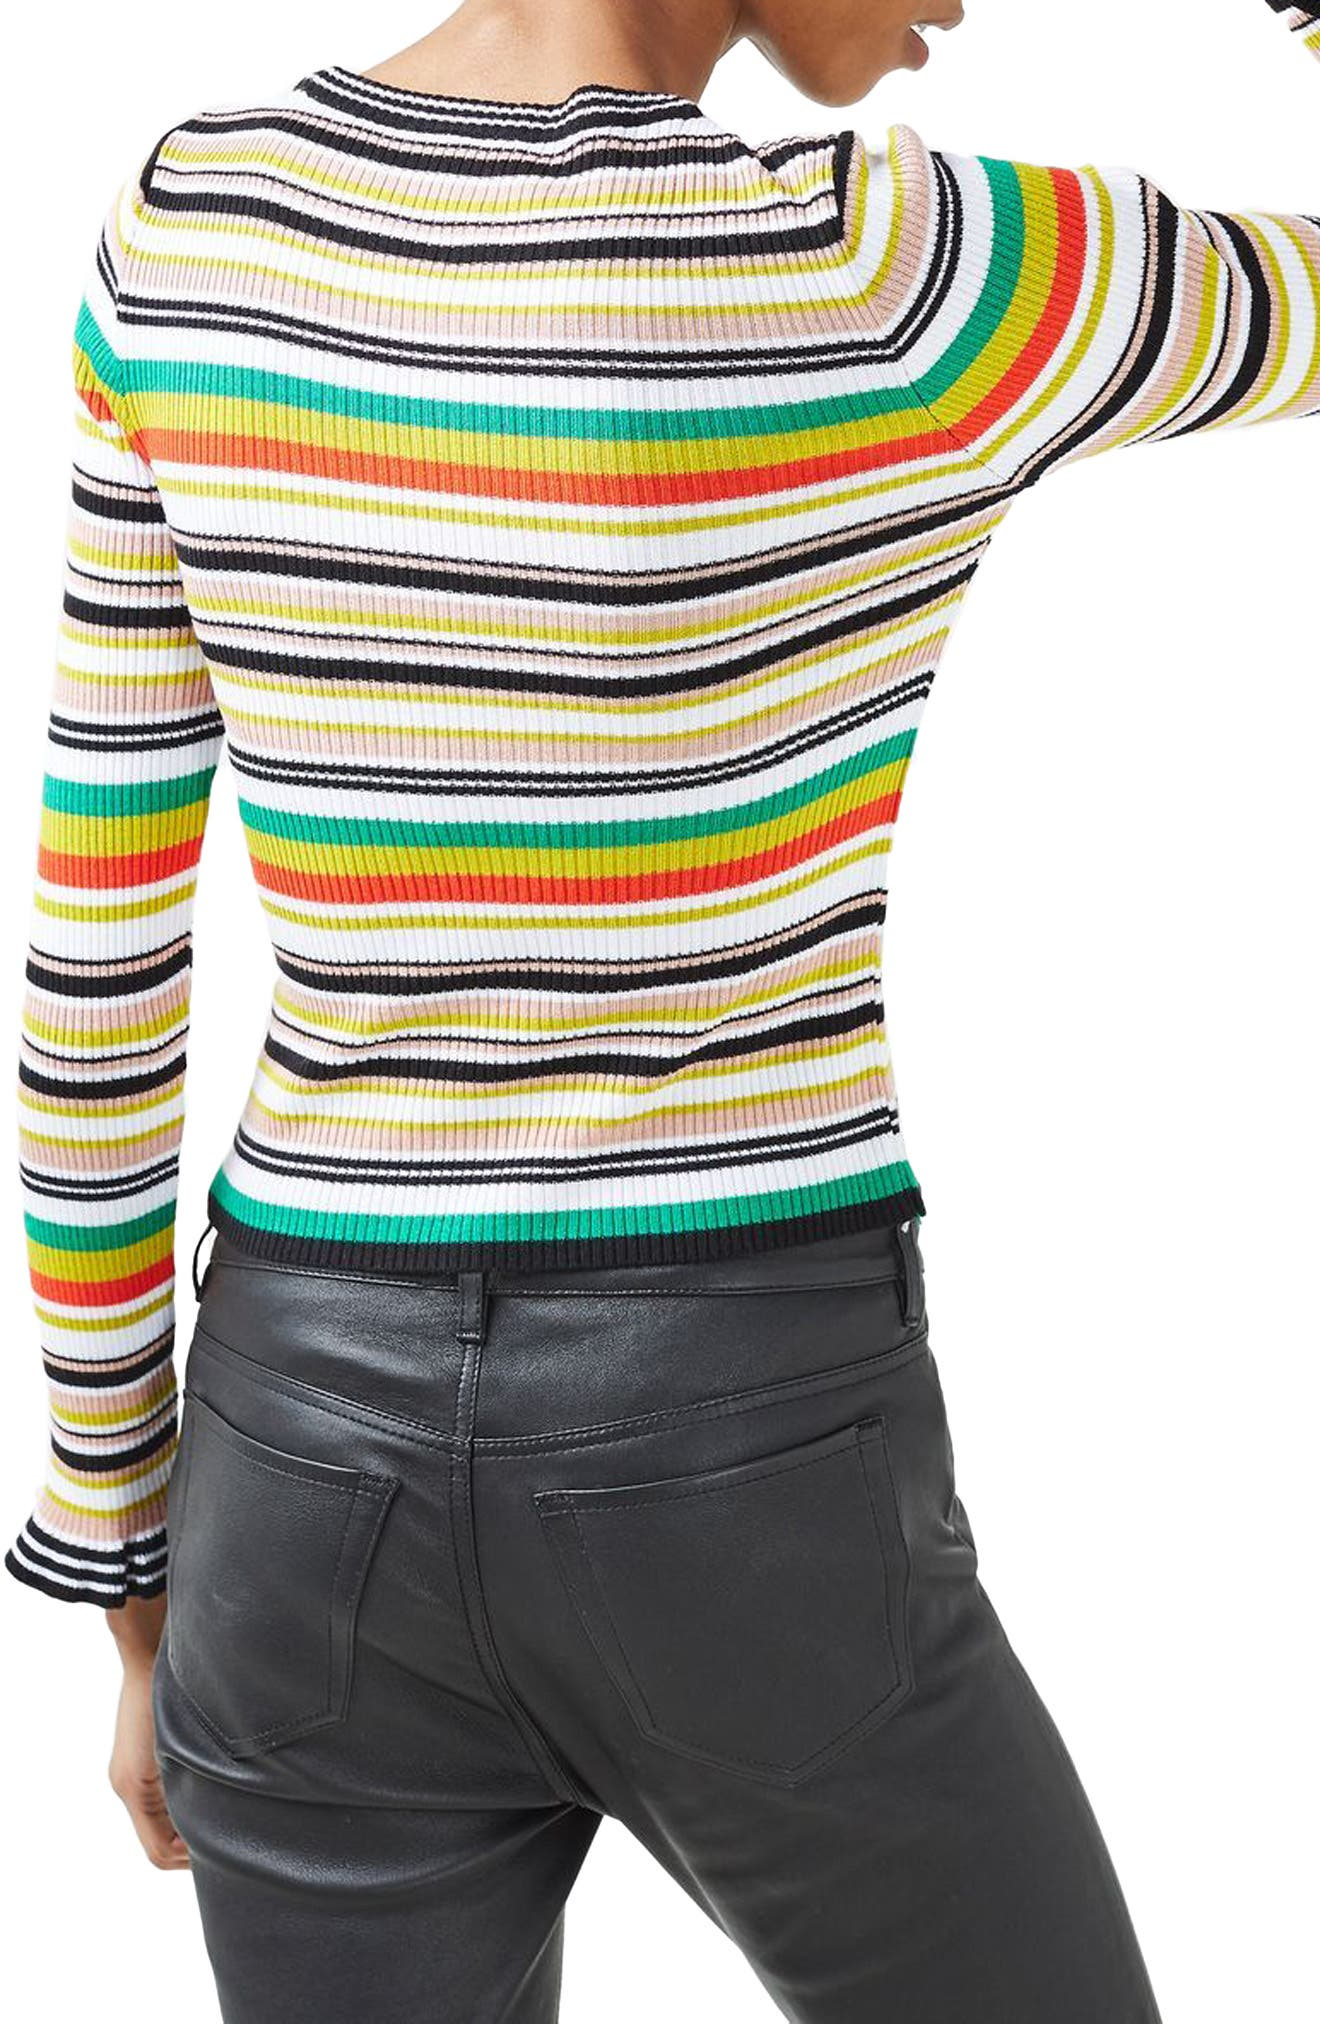 Hyper Stripe Sweater,                             Alternate thumbnail 2, color,                             100